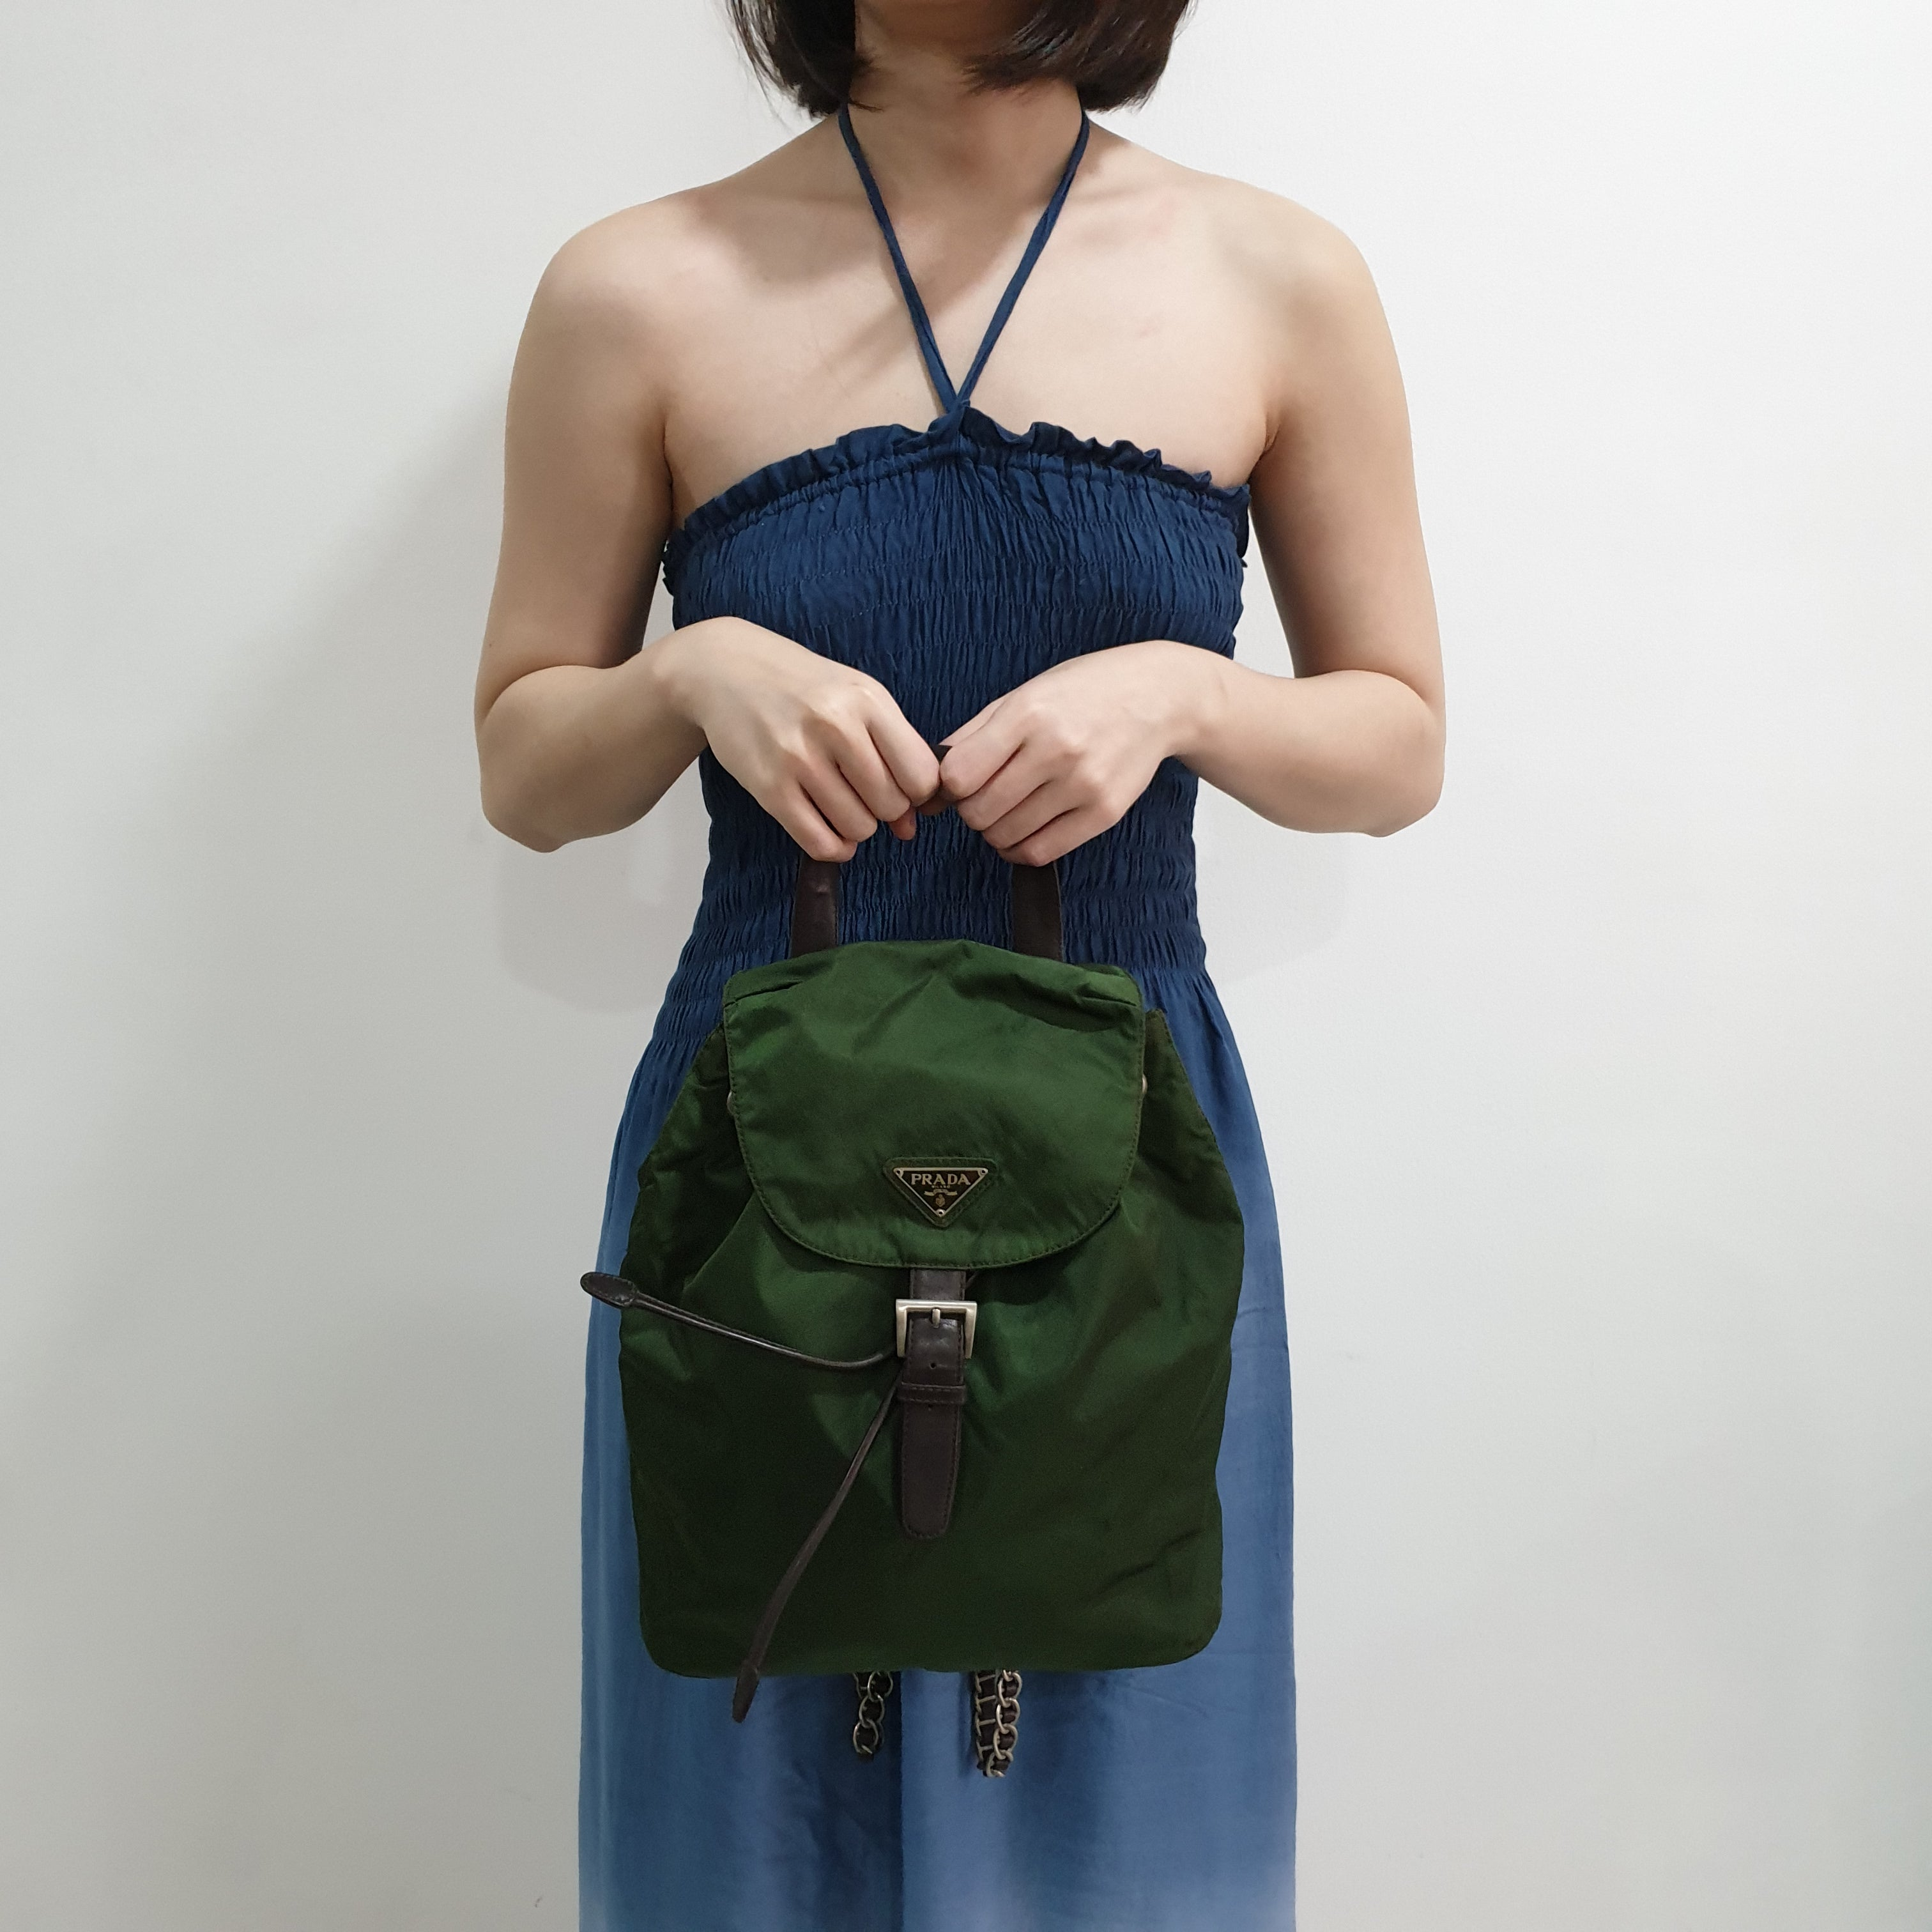 Prada Nylon Backpack with Chain Strap Detail